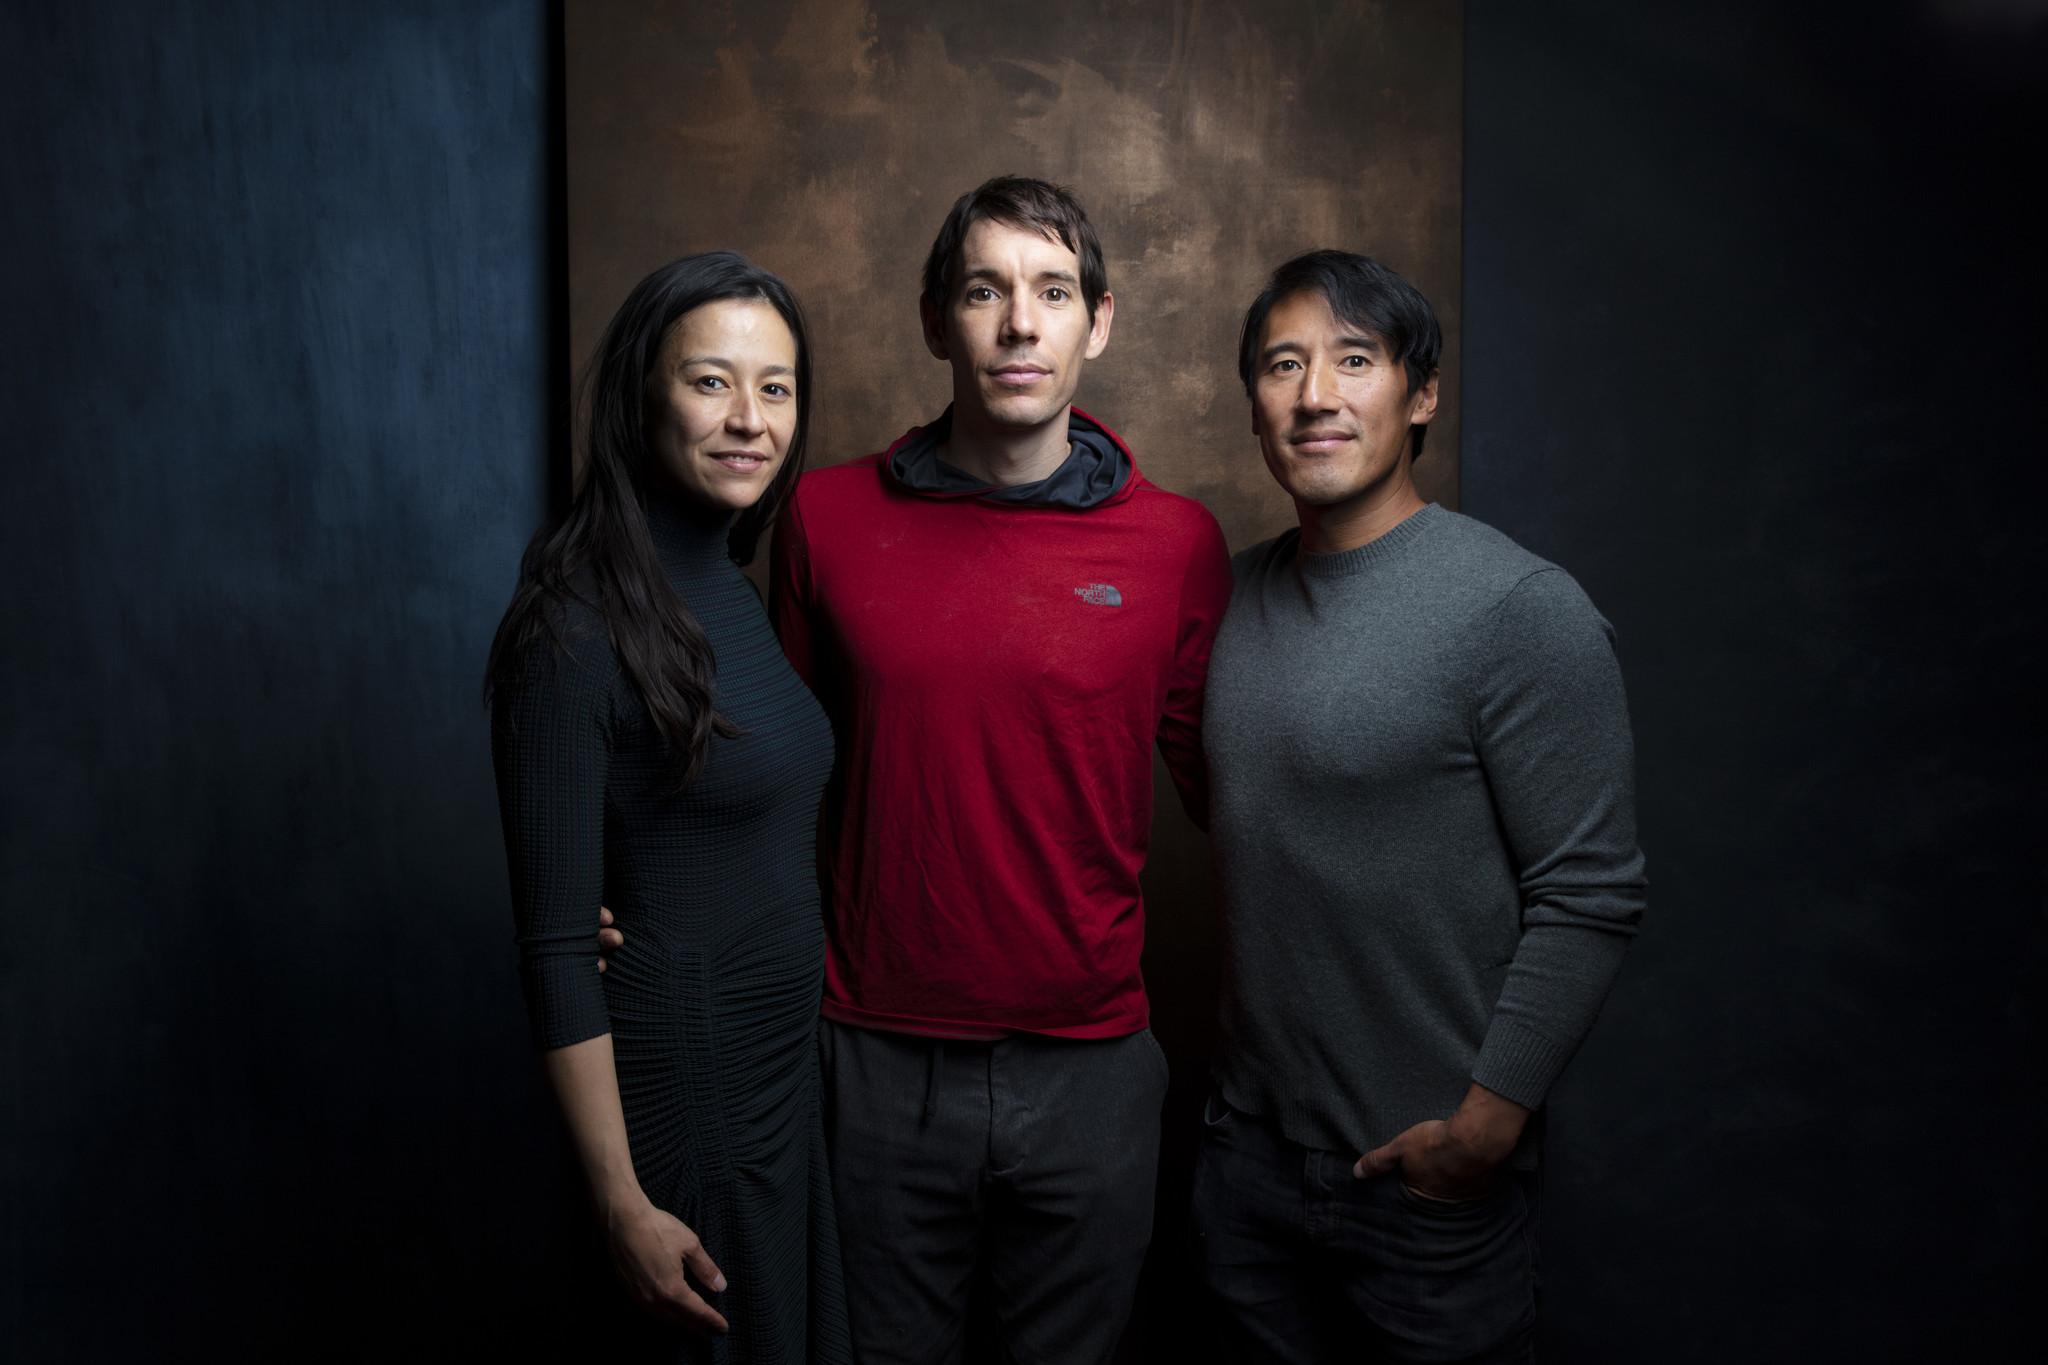 TORONTO, ONT., CA — SEPTEMBER 10, 2018-- Director Chai Vaserhelyi, subject Alex Honnold, and direct